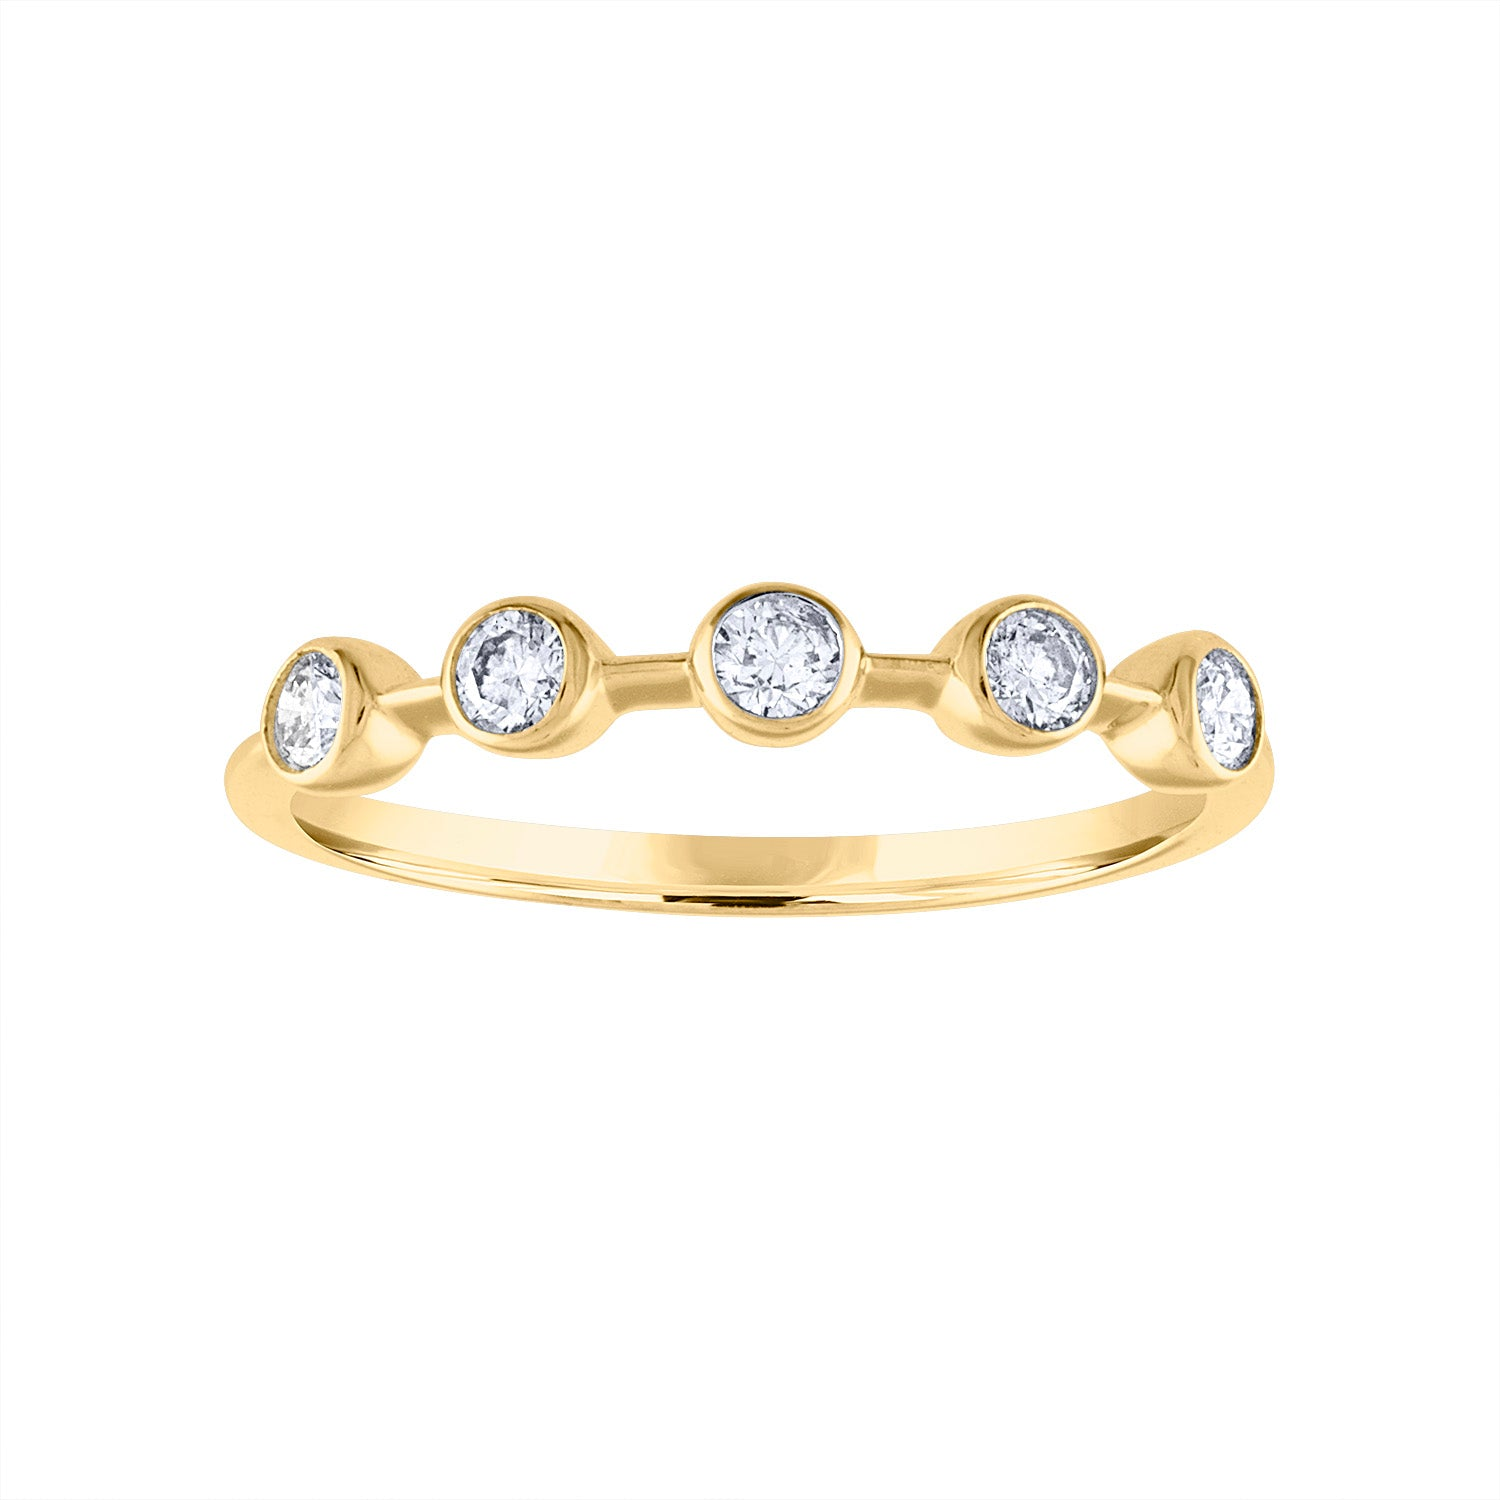 18KT GOLD FIVE BEZEL SET DIAMOND RING